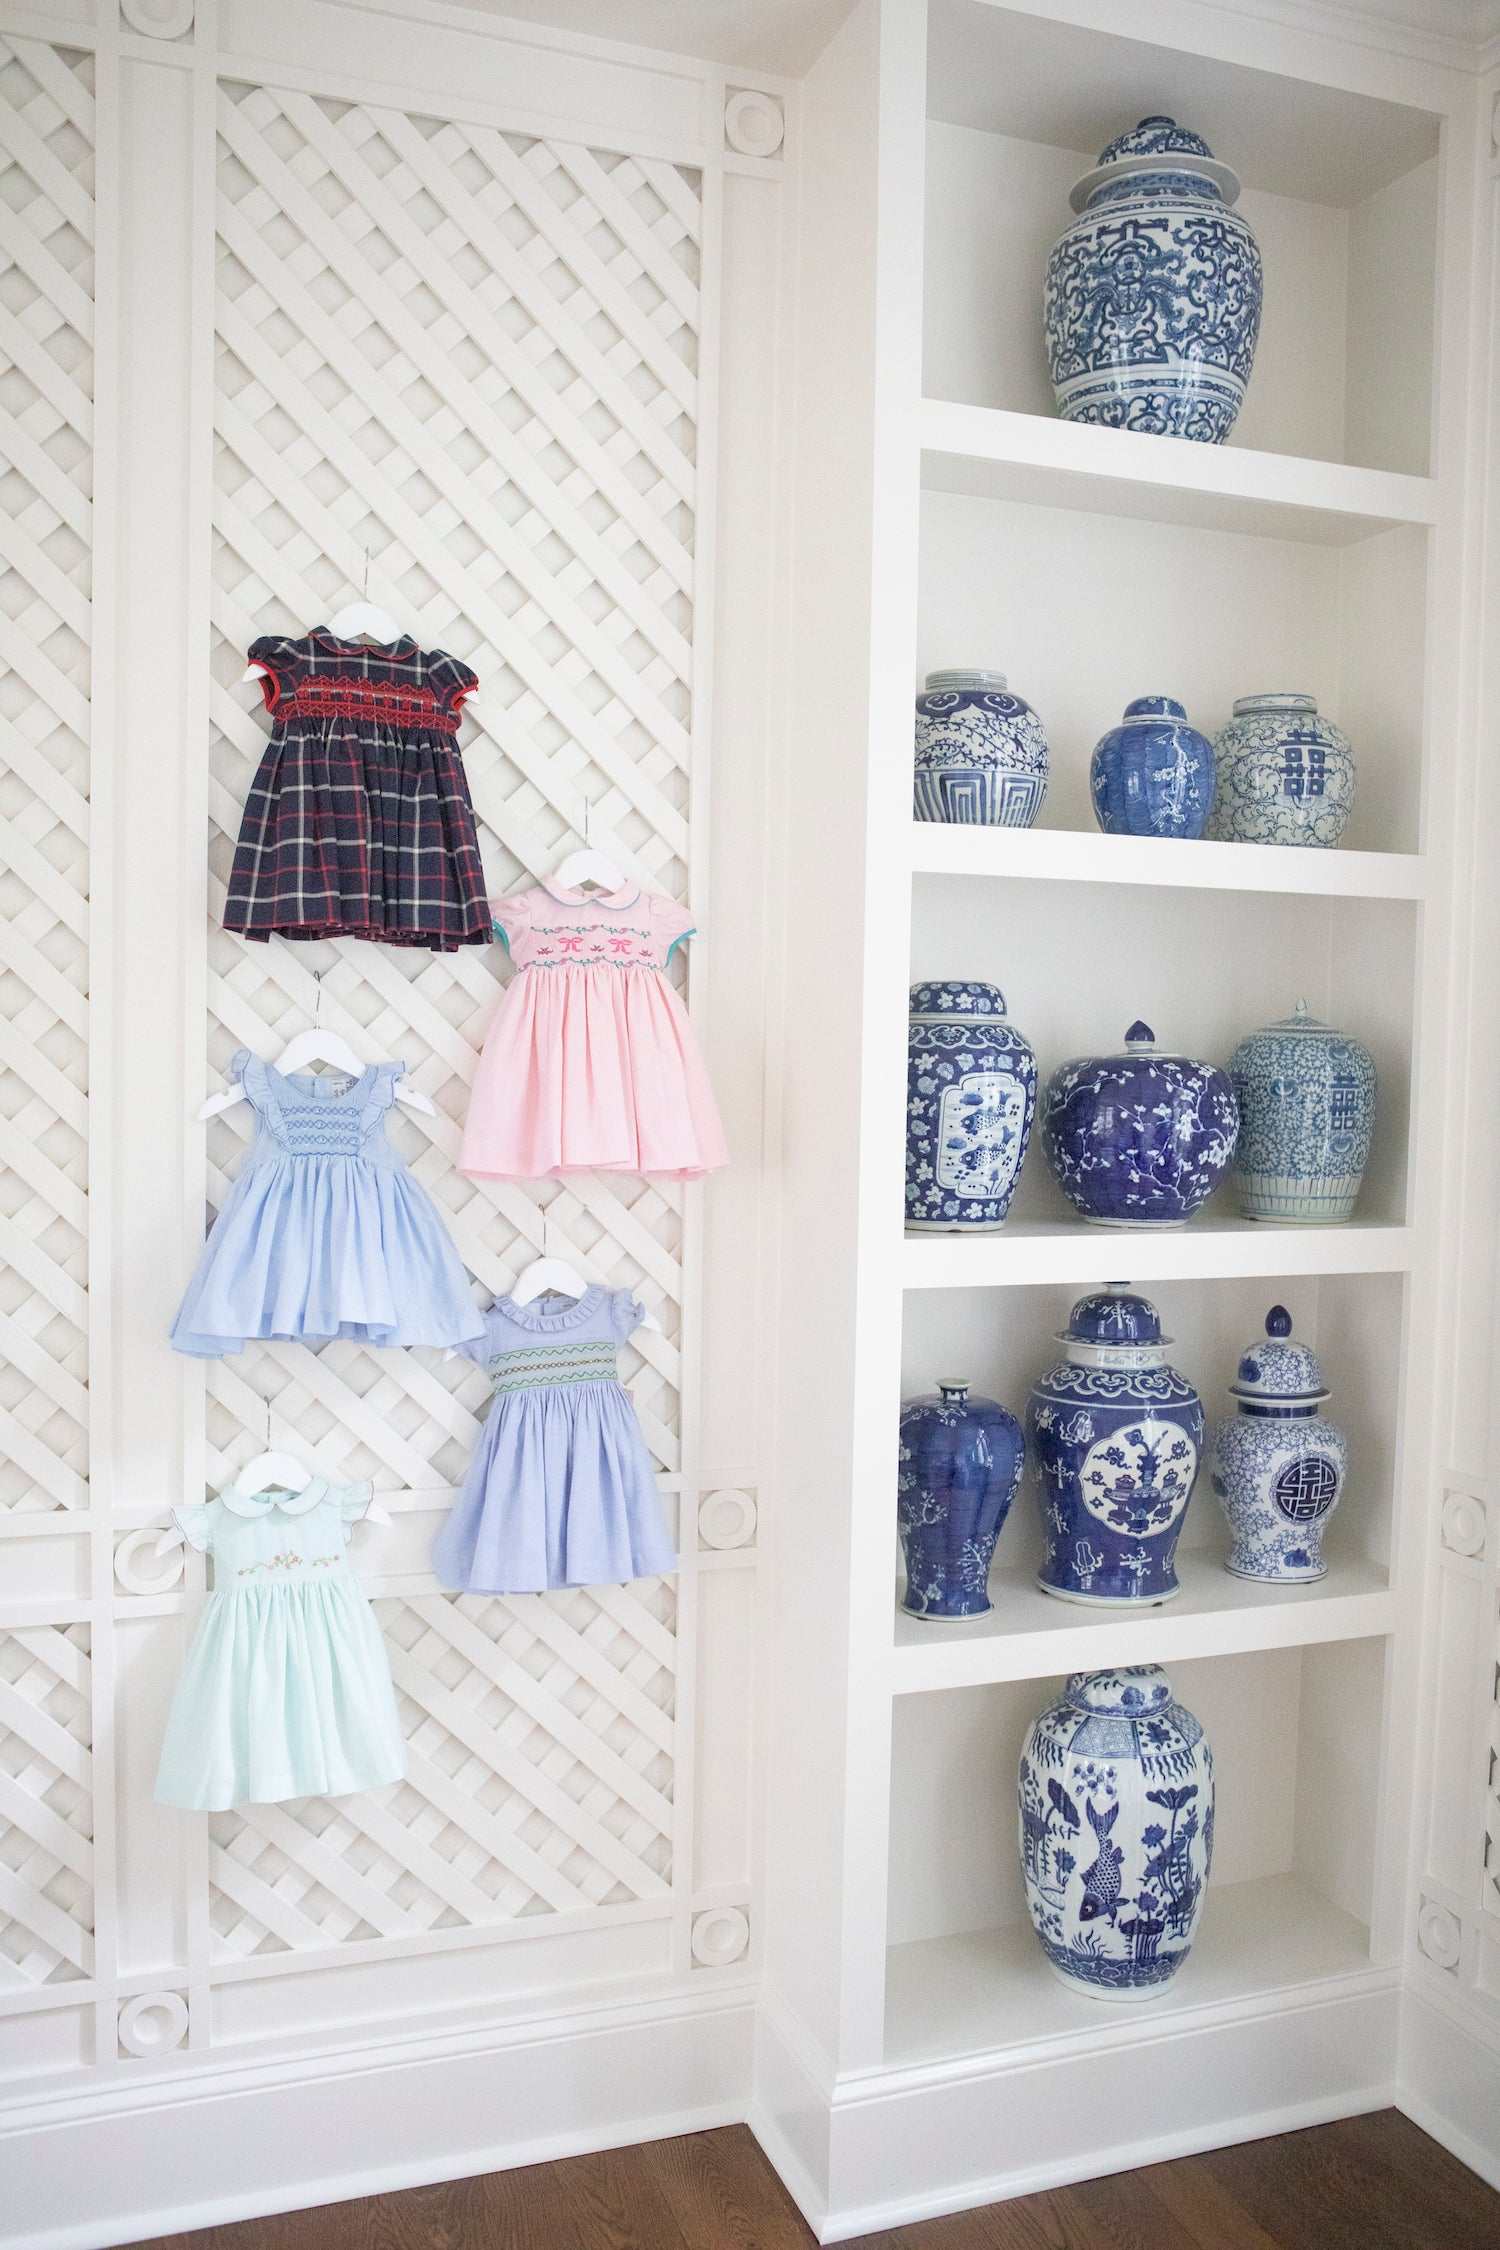 October trunk show in Atlanta with Emily Hertz smocked dresses baby